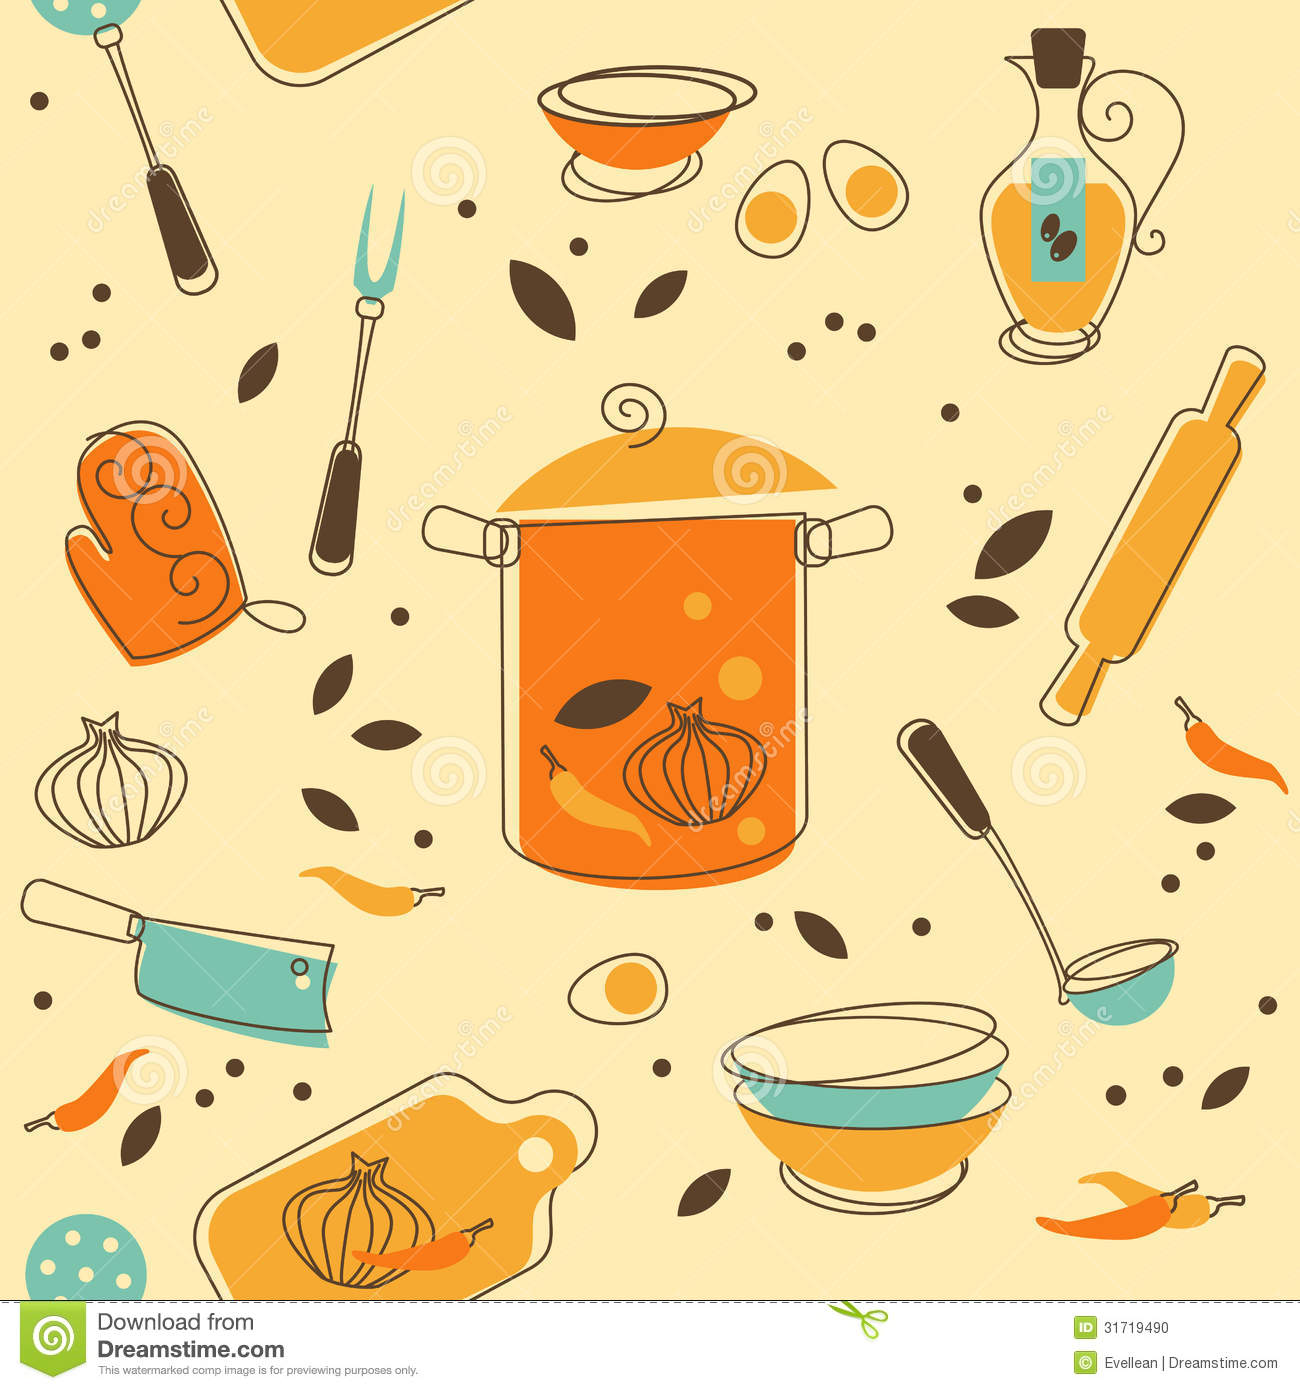 Kitchen Utensil Stock Vector. Illustration Of Cooking